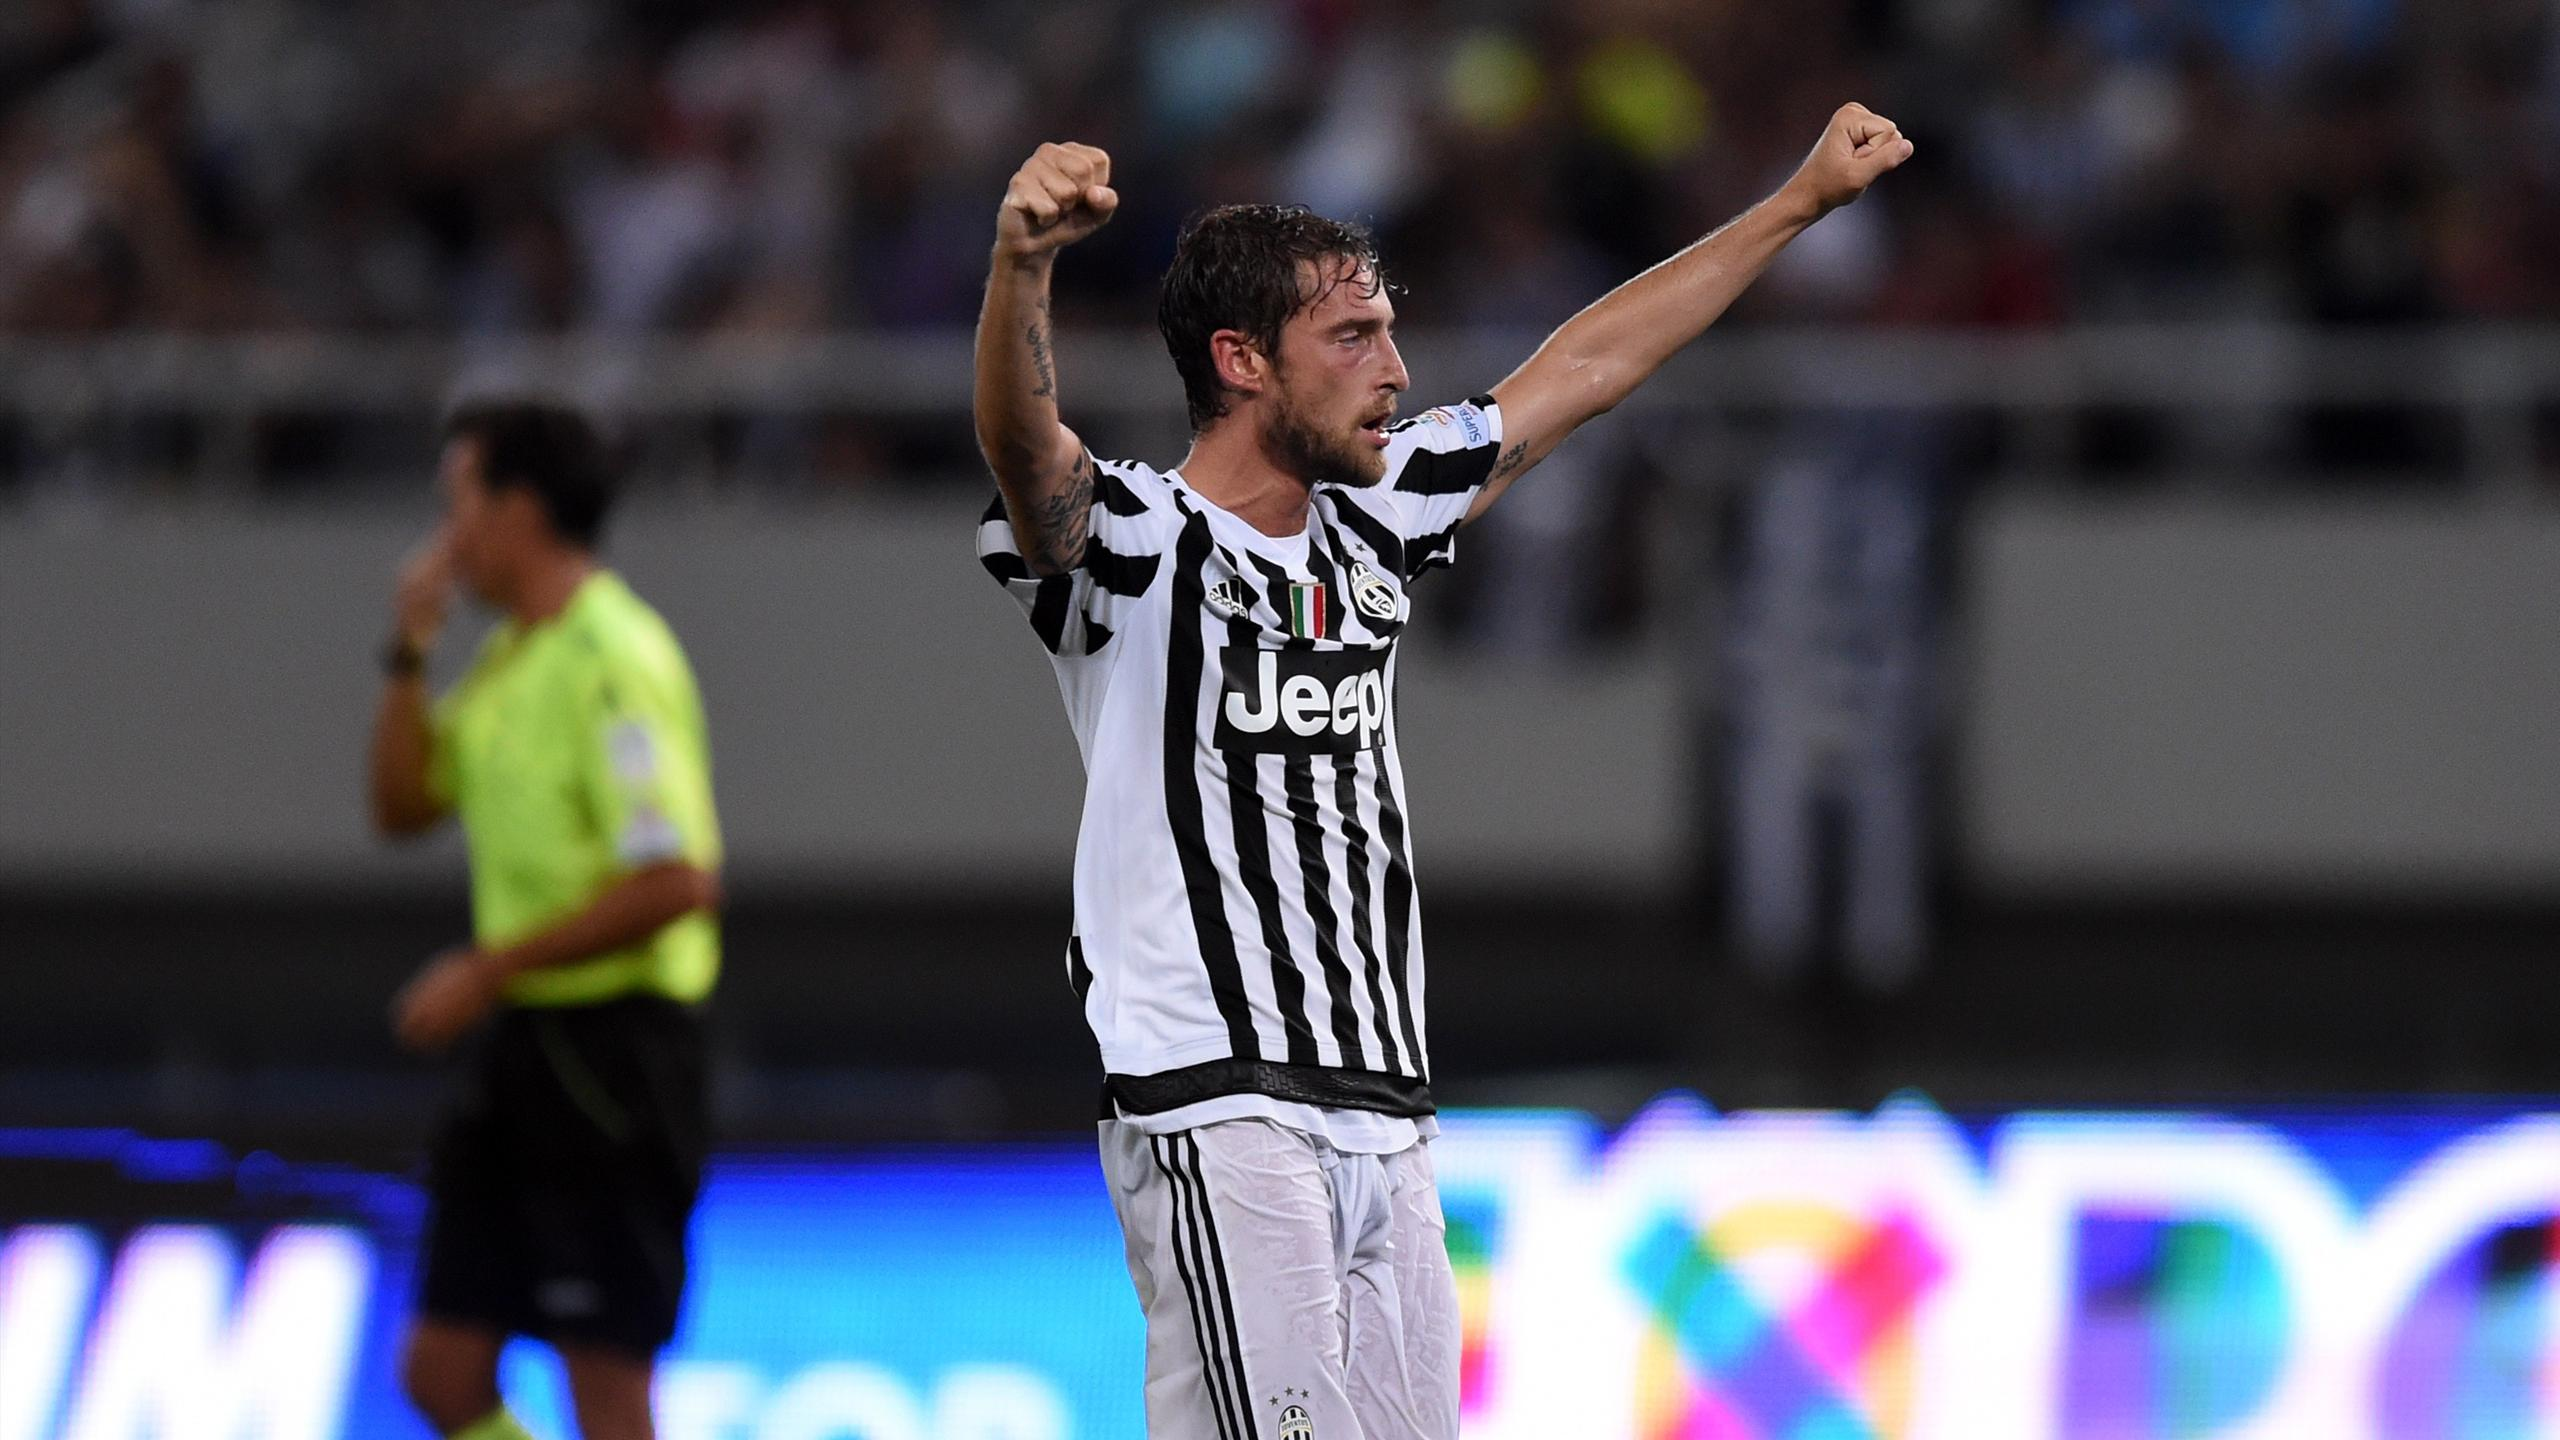 Juventus midfielder Claudio Marchisio celebrates